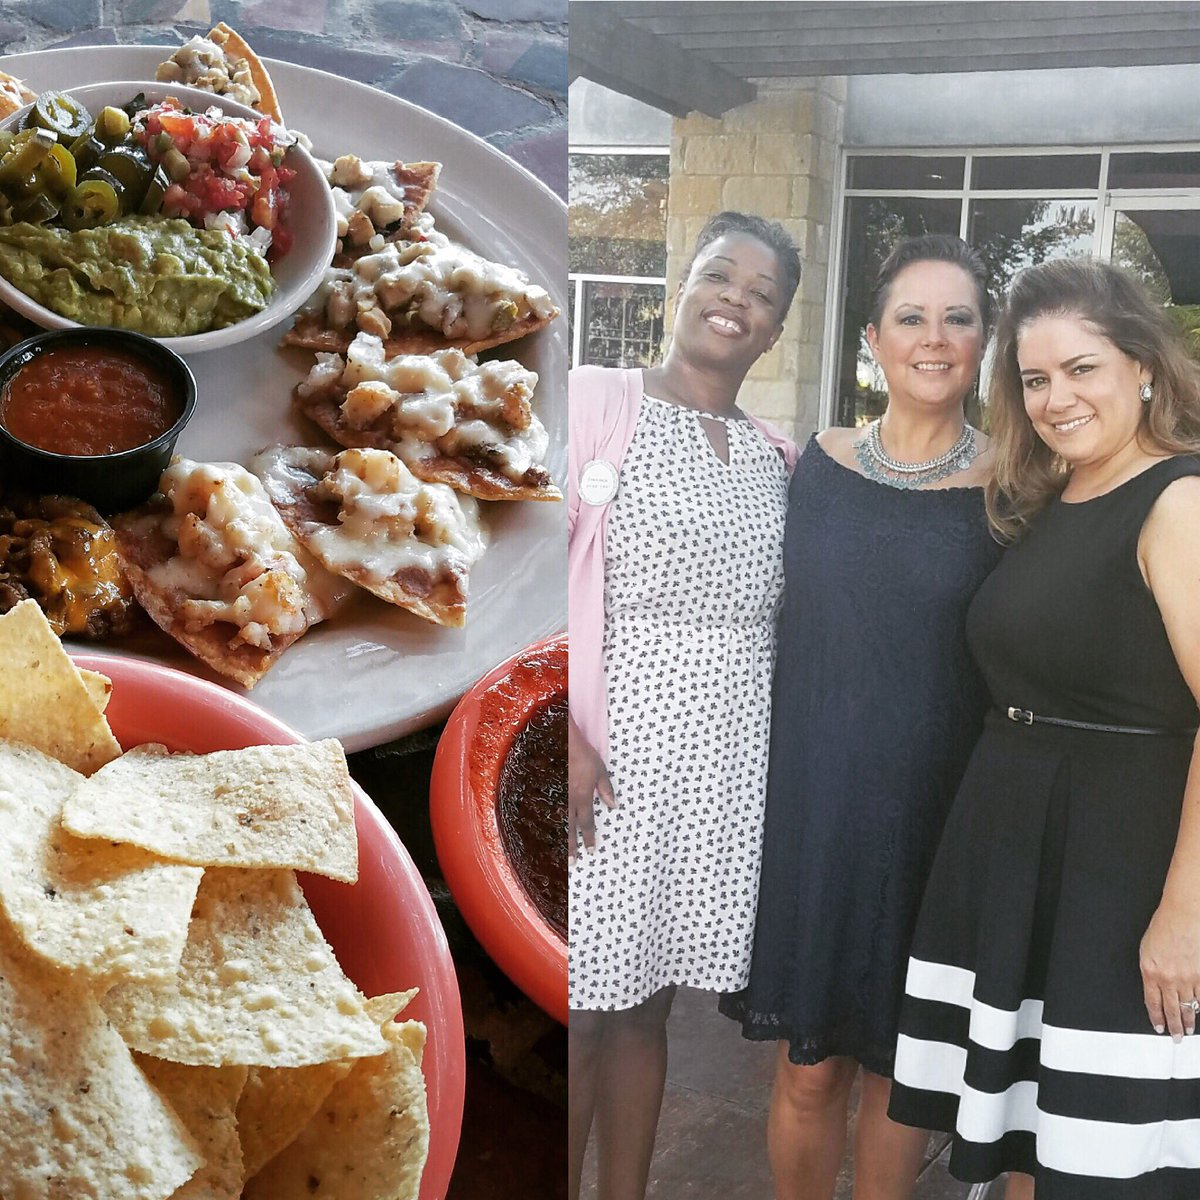 A lovely evening @aldacos_stoneoak! Thank you @blanca_aldacos for your wonderful #hospitality &amp; #cuisine! #eatlocal #satx #buenprovecho<br>http://pic.twitter.com/ixvxHWkAUM